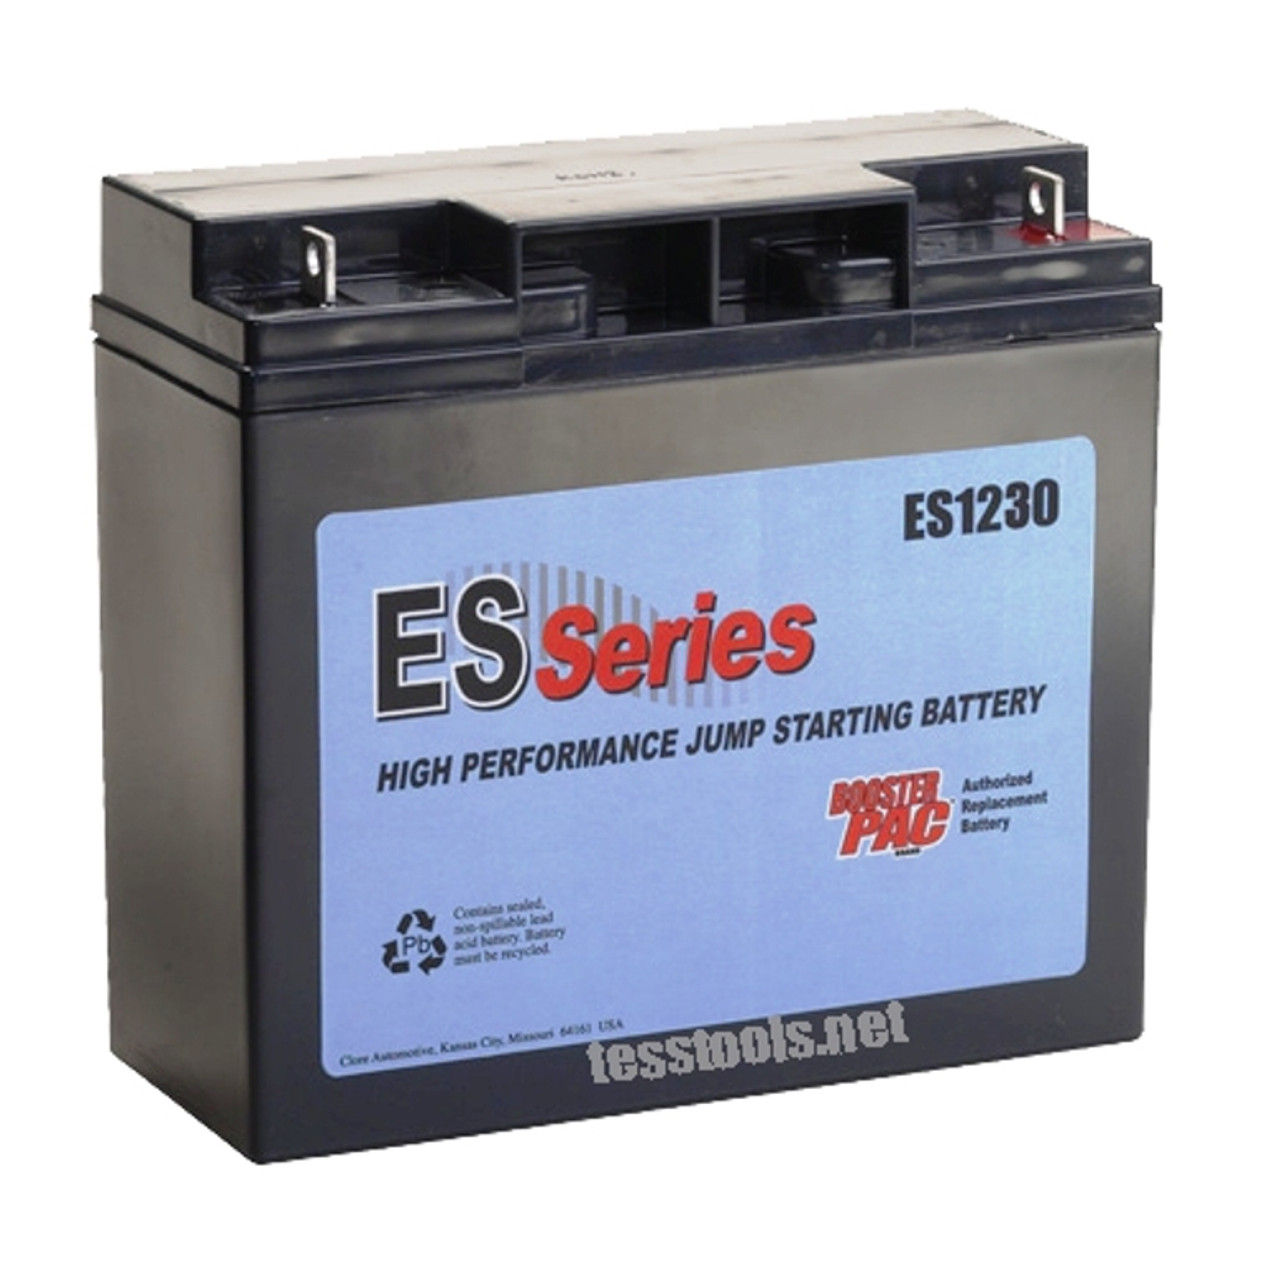 ES1230 ES Series - Replacement Battery for ES5000